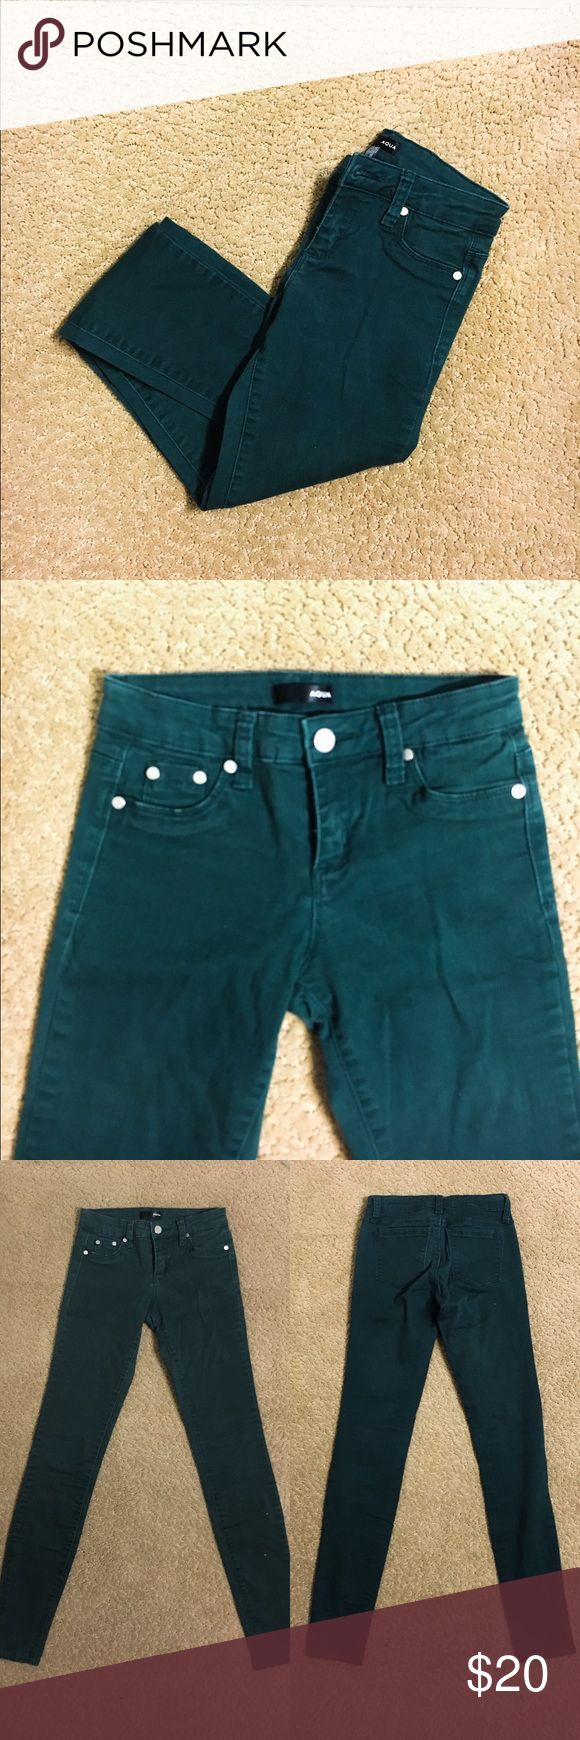 Aqua Brand Hunter Green Skinny Jeans || Size 24 These hunter green jeans are so comfortable they almost feel like jeggings.  The hunter green color is on trend this fall, and these jeans are definitely a bargain! Aqua, a brand sold almost exclusively at Bloomingdales produces high quality comfortable clothing. The jeans show a little fading towards the waistband and belt loops but will be covered by a shirt, the rest of the pants are in great shape.  Size 24, true to size. Aqua Jeans Skinny